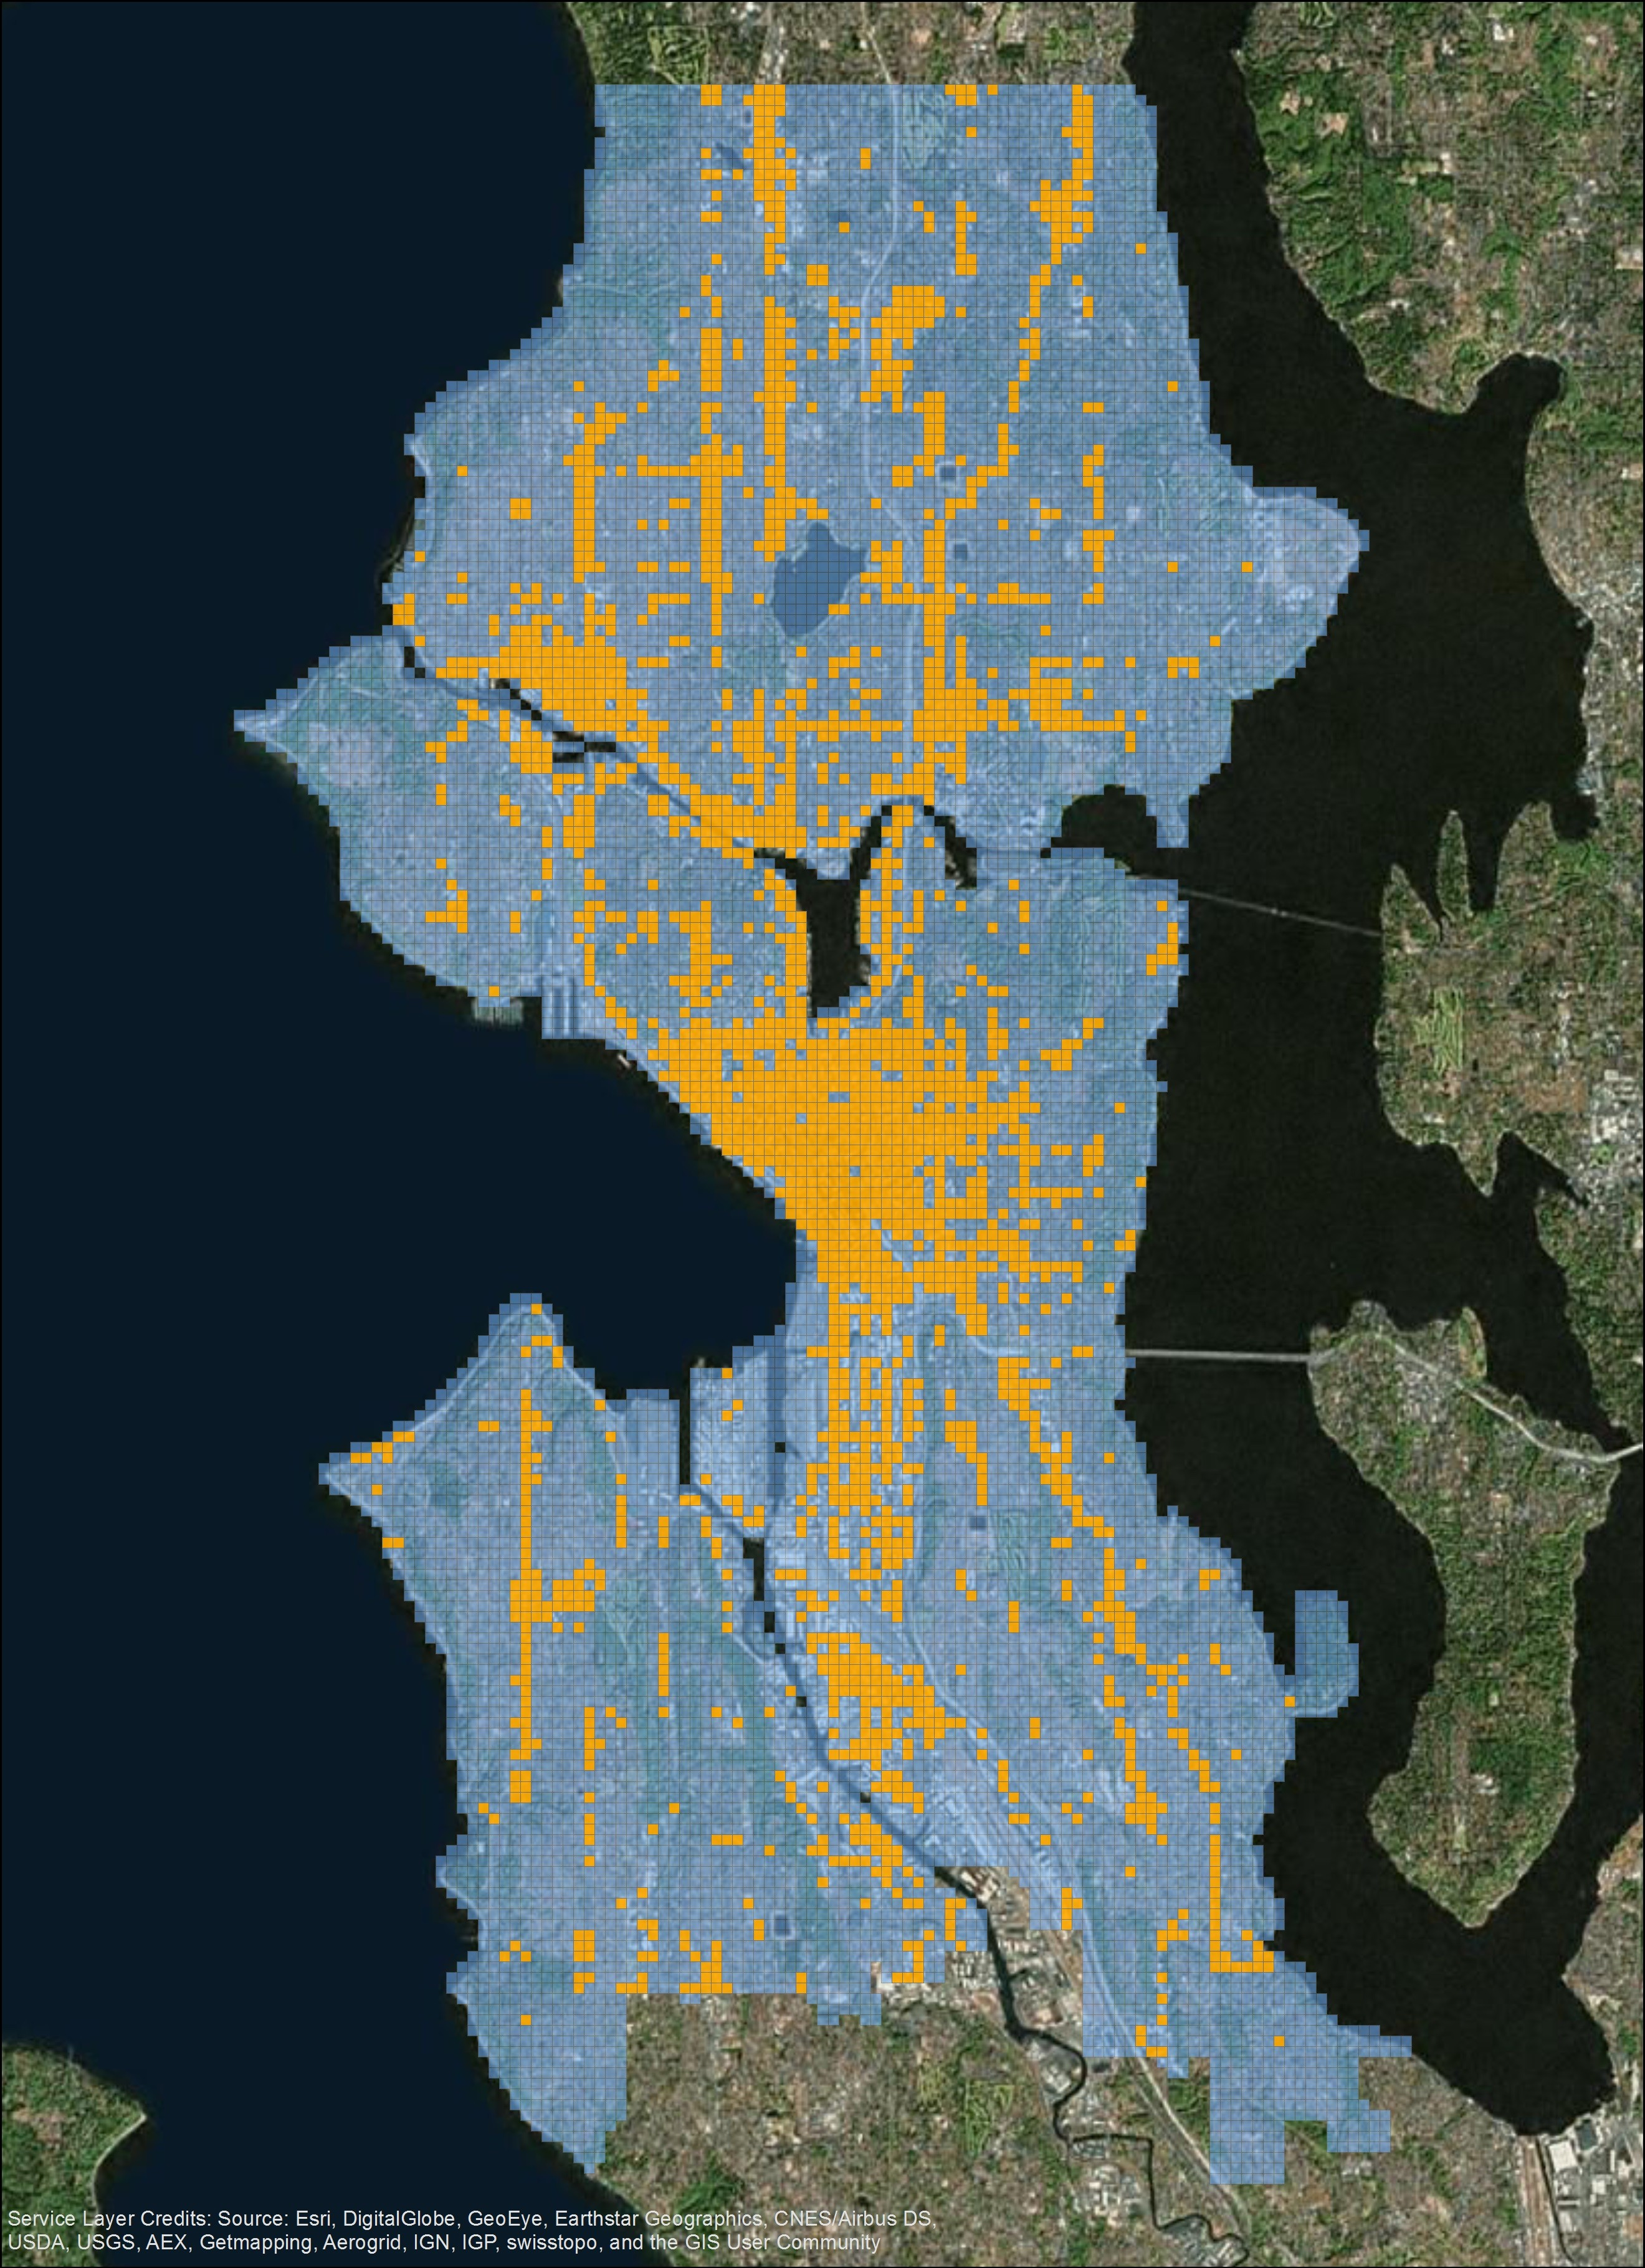 1dcb40cea39c8 FIG. 2  A 200-meter-by-200-meter grid lattice over the city of Seattle.  Orange squares indicate commercial or mixed-use areas  blue squares  represent all ...